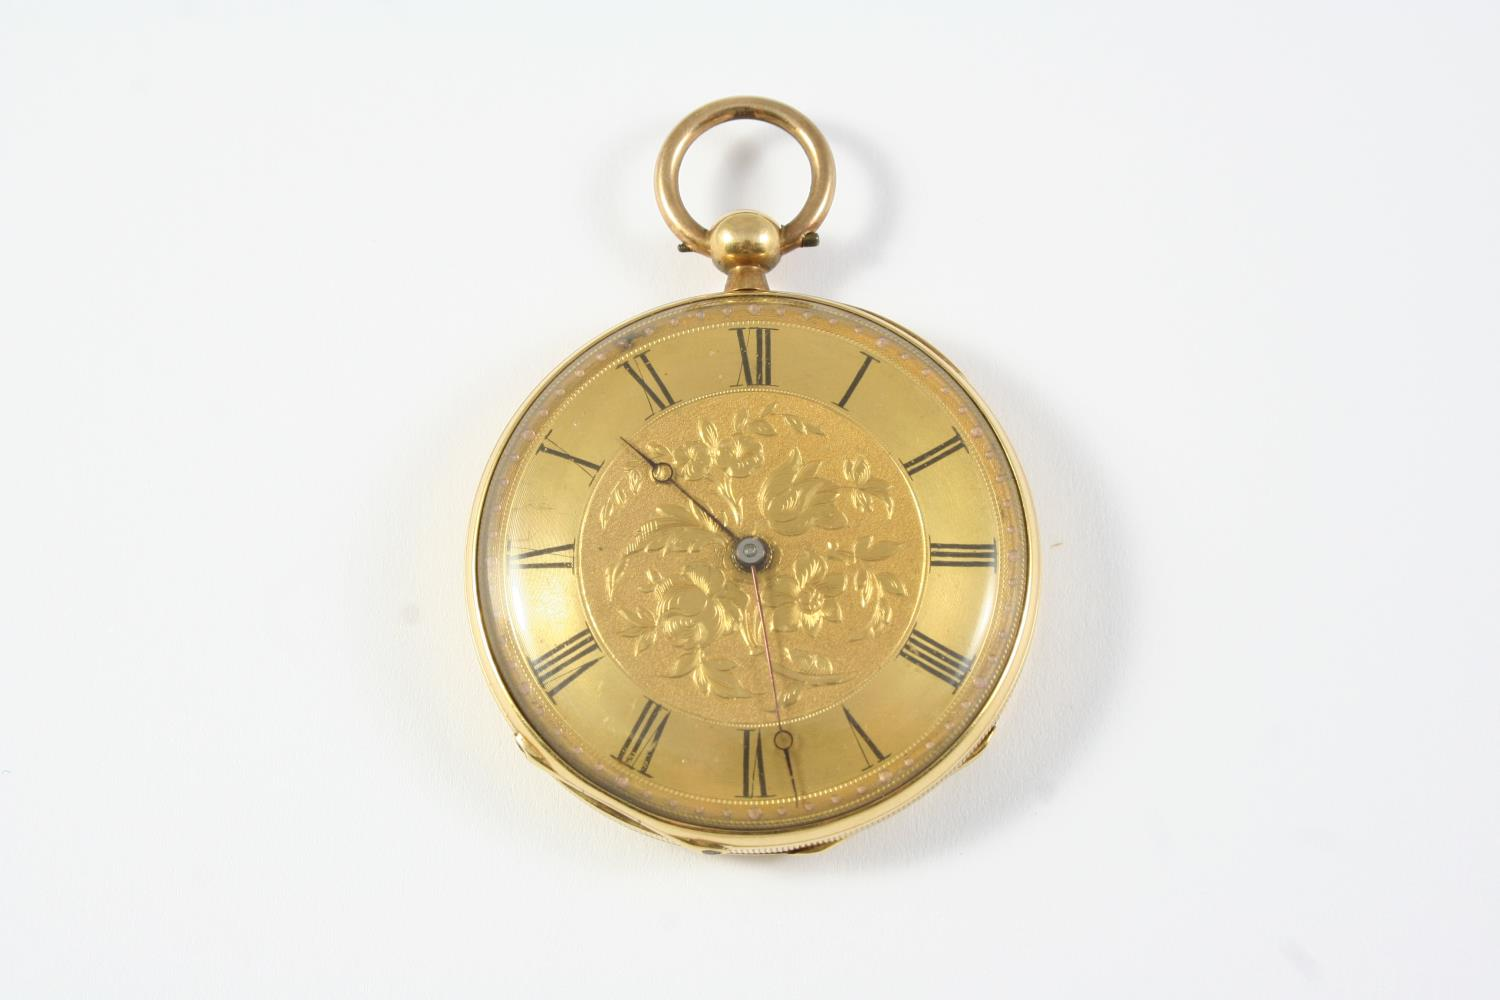 A GOLD OPEN FACED POCKET WATCH the gold foliate engraved dial with Roman numerals, engraved to the